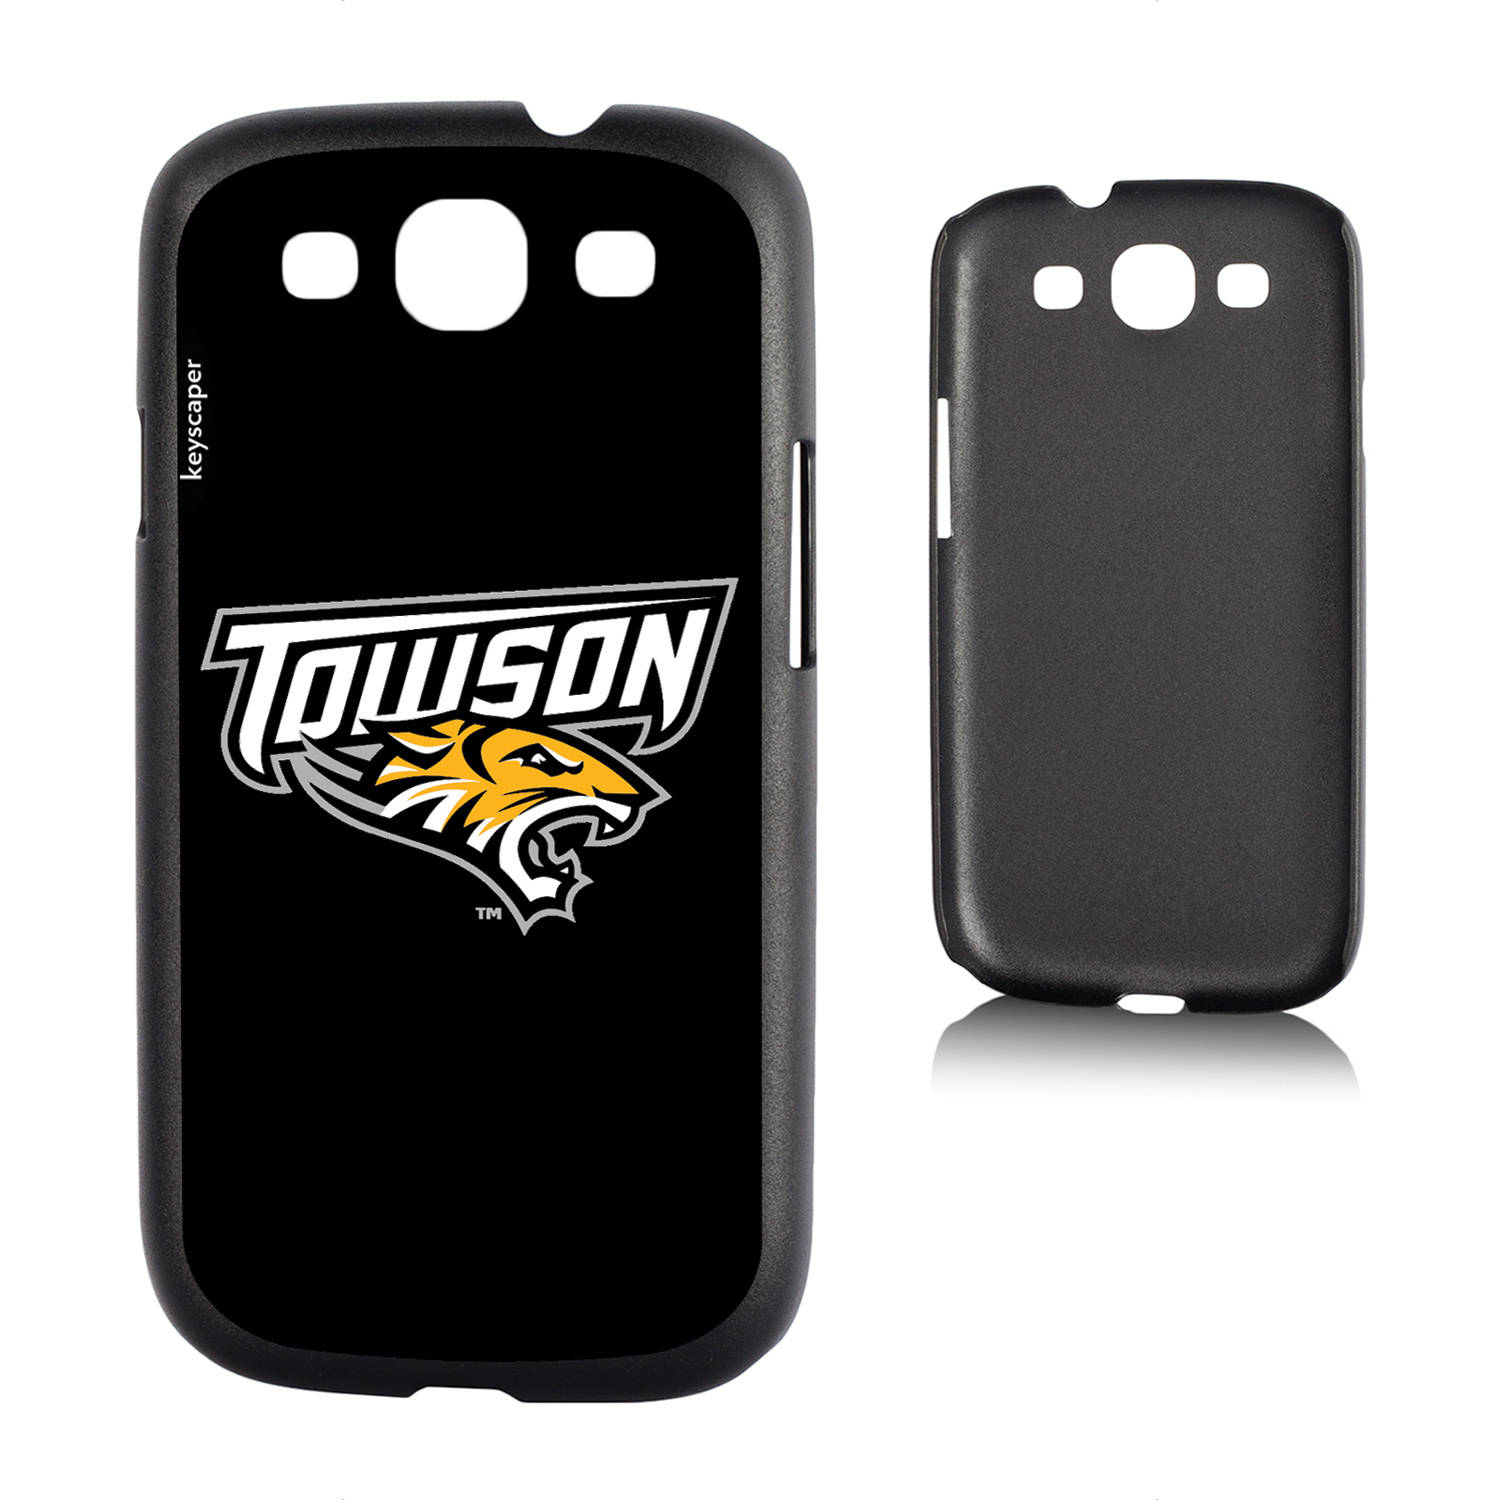 Towson Tigers Galaxy S3 Slim Case